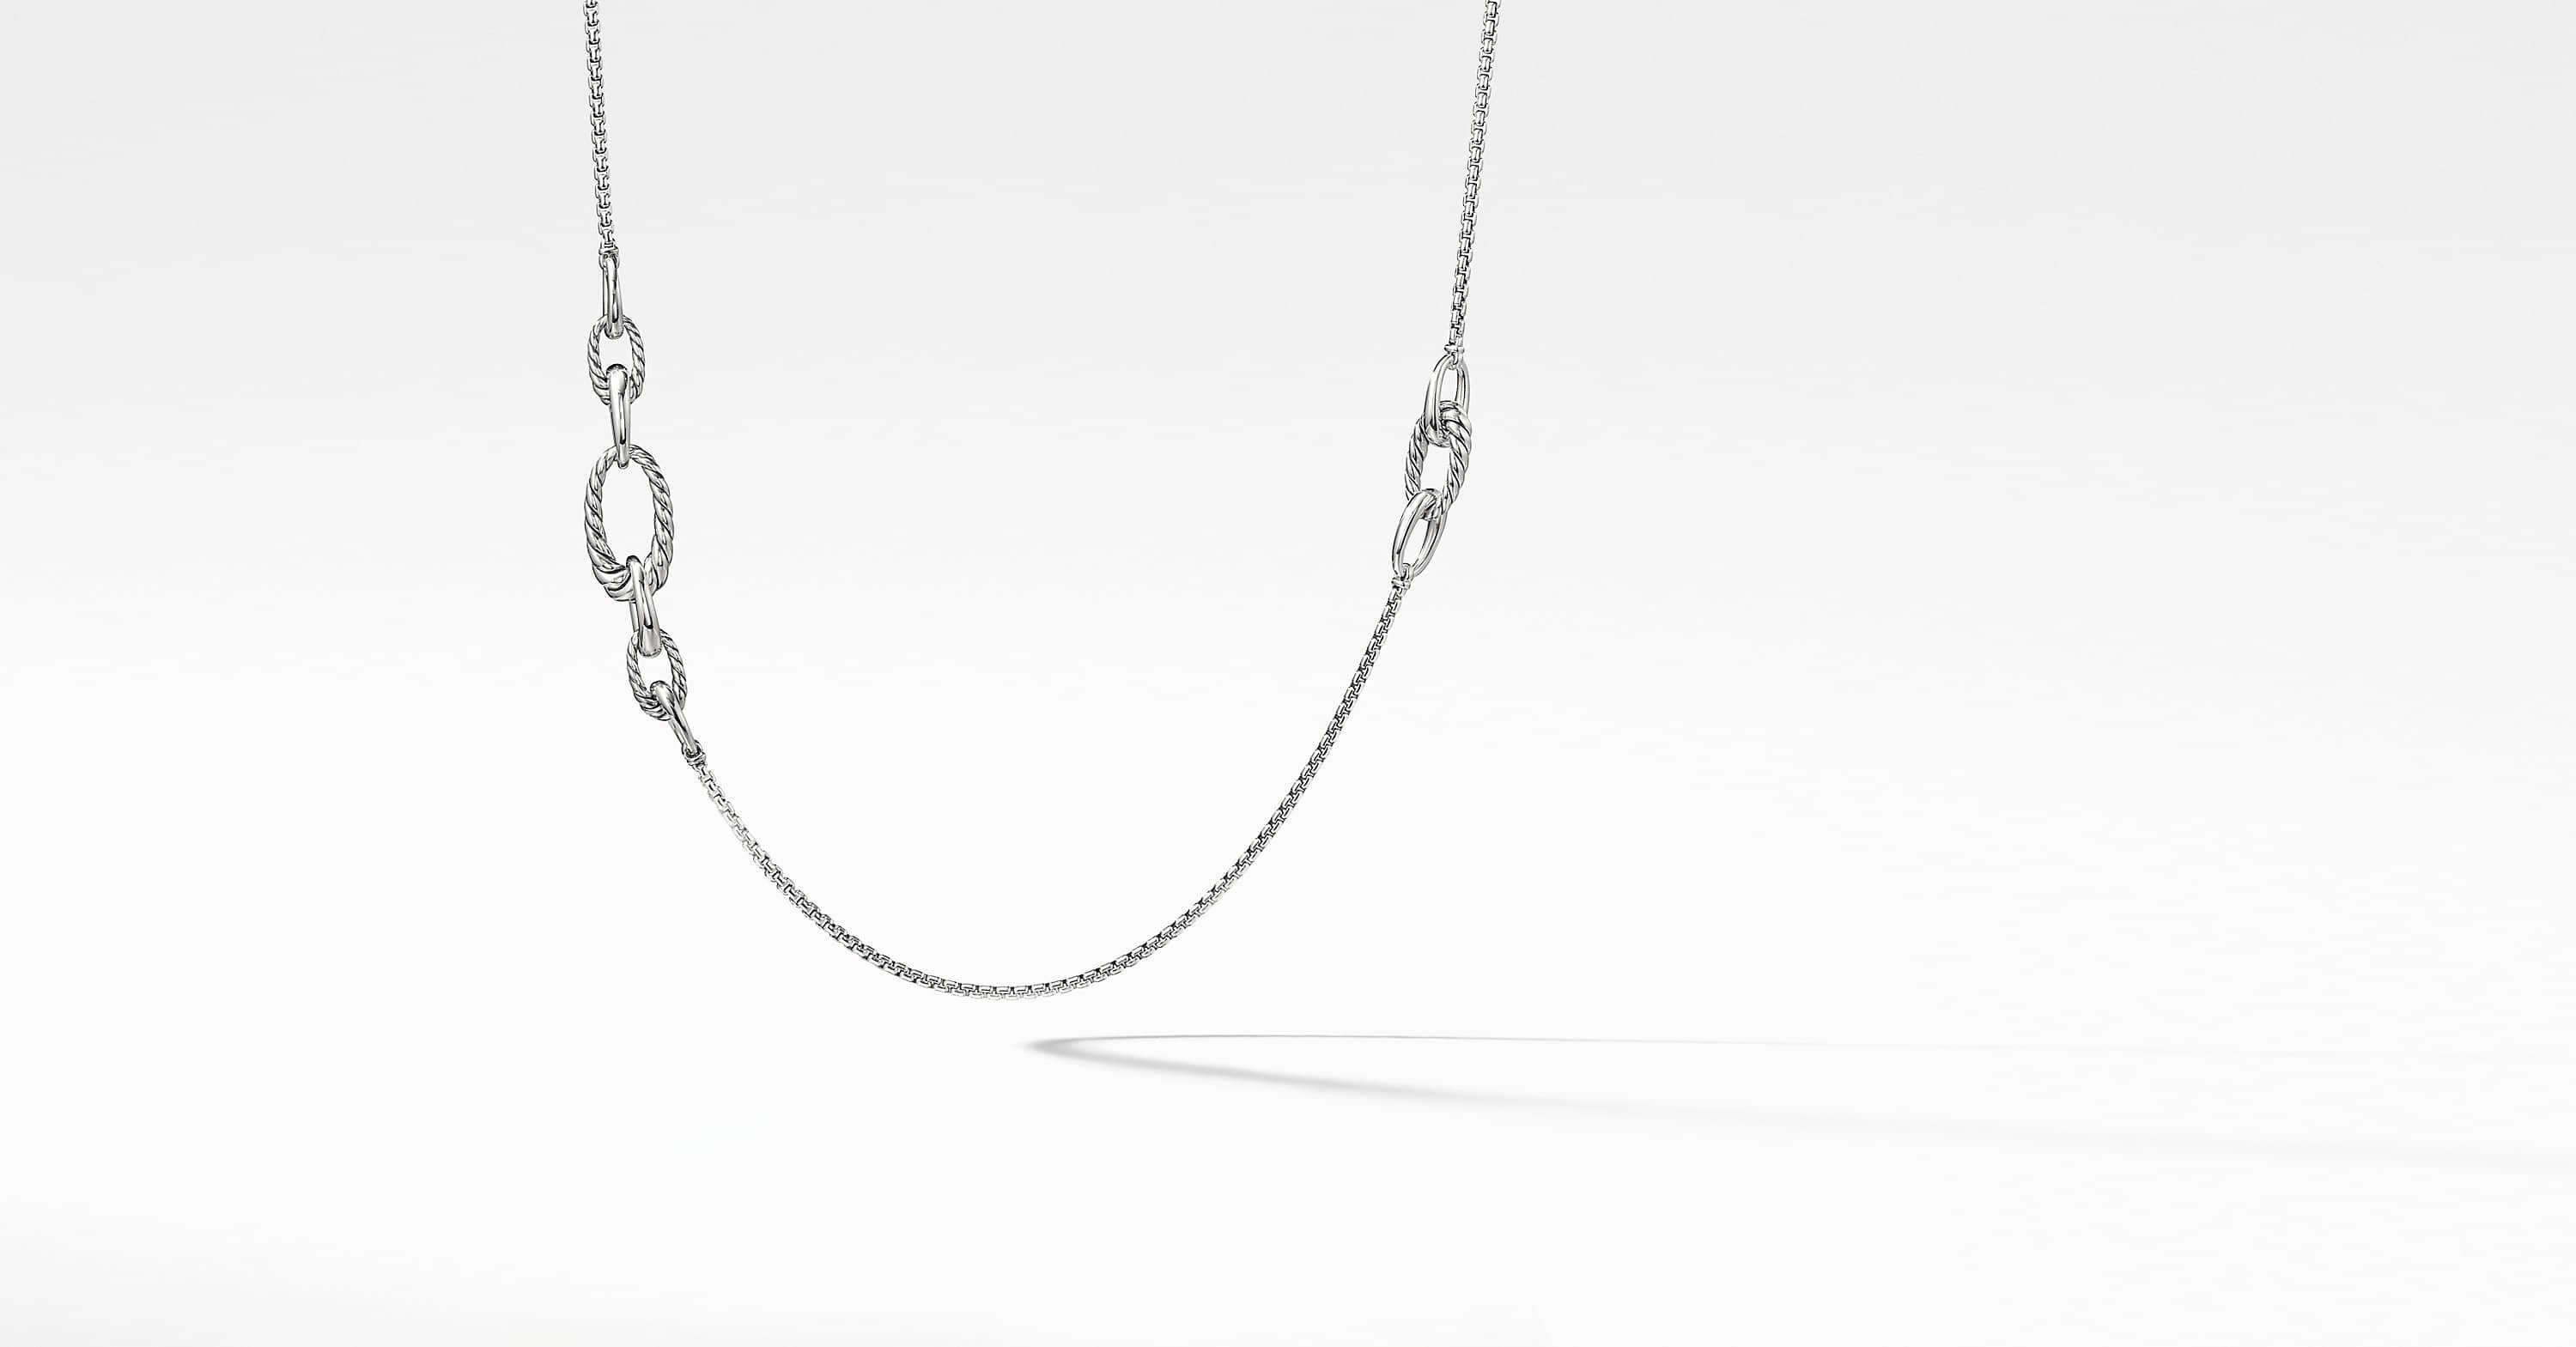 Pure Form Graduated Chain Necklace